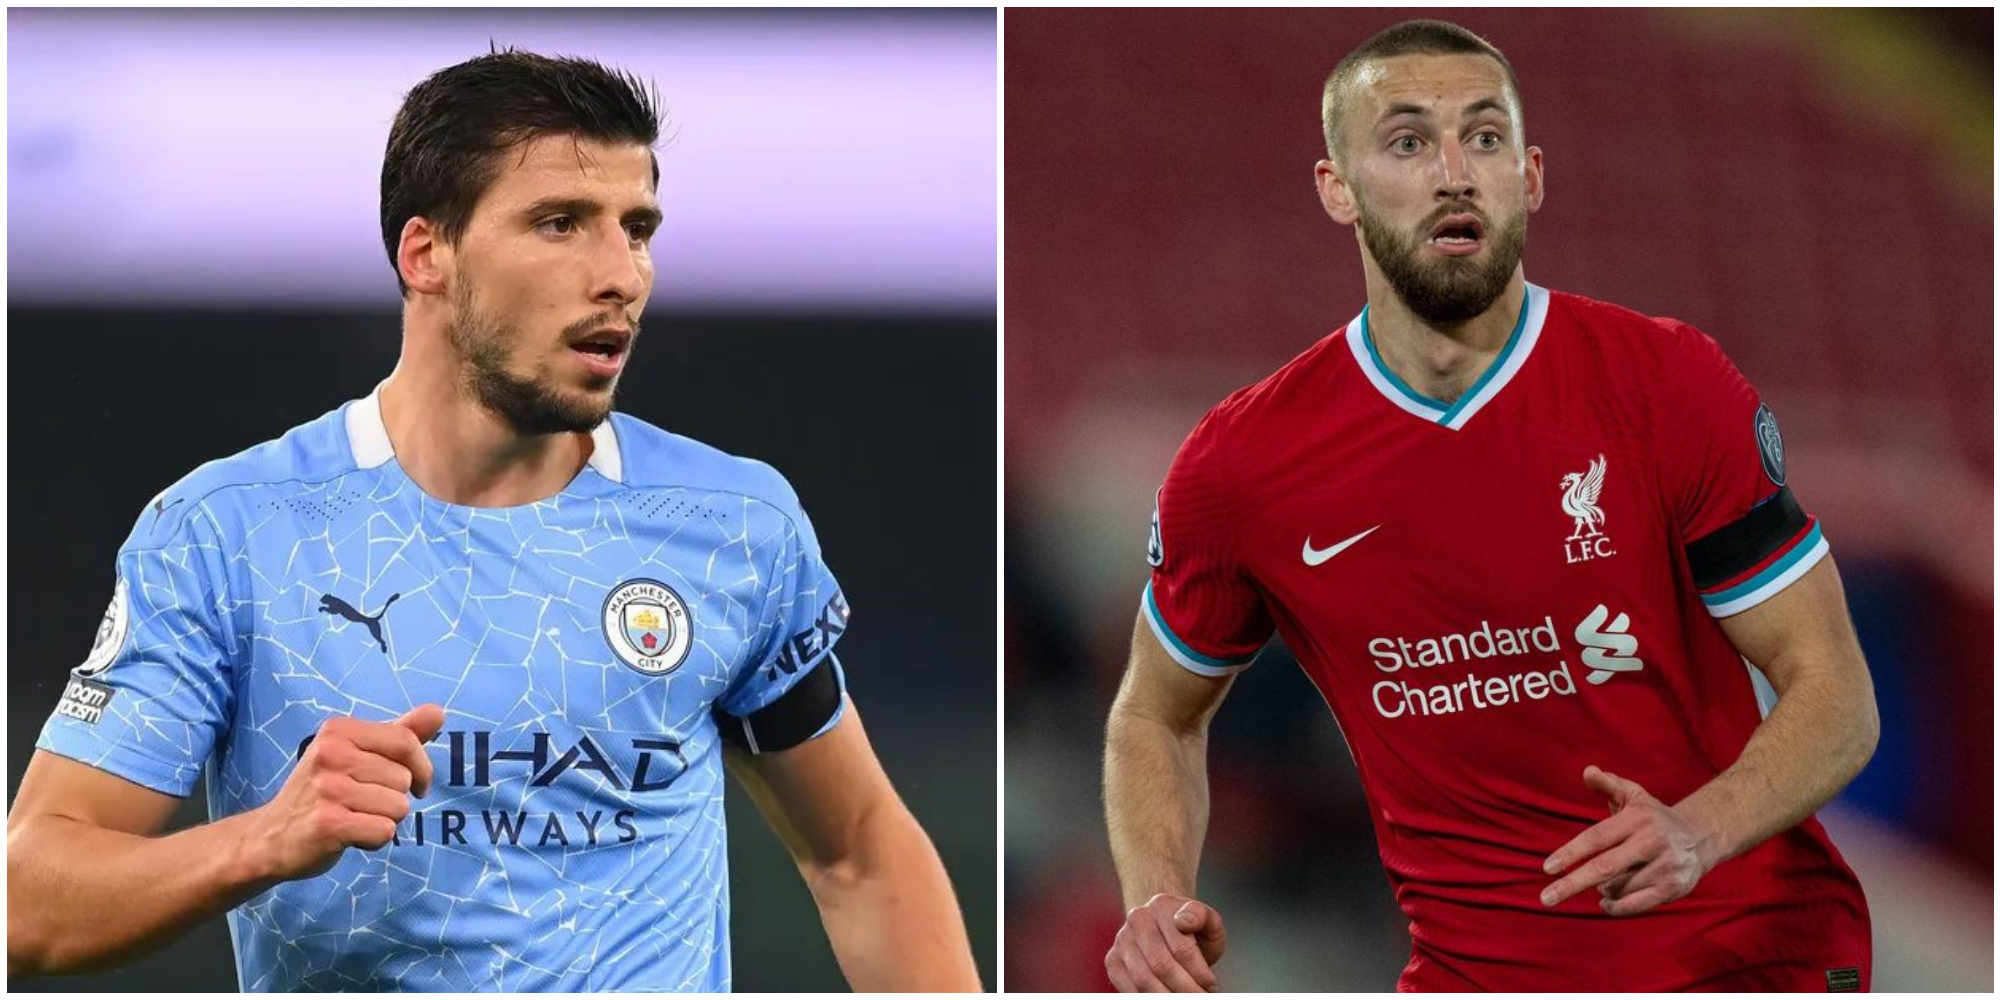 Ruben Dias' stats compared with Nathaniel Phillips' make for hilarious reading